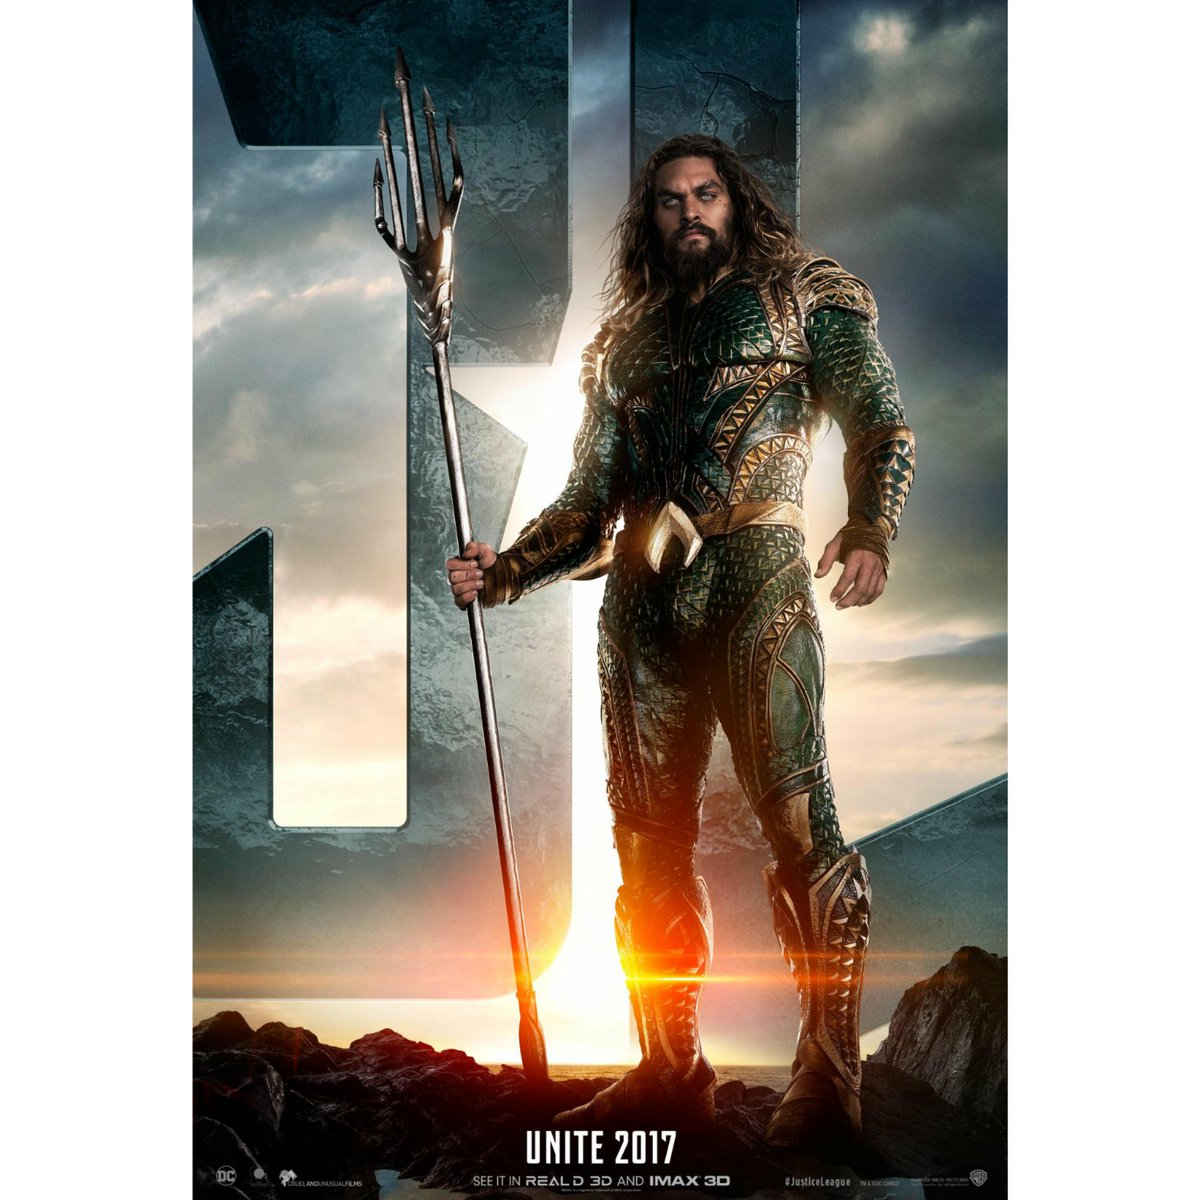 #JasonMomoa made his second cinematic appearance as #Aquaman  in #TheJusticeLeague this past weekend. #NativeHawaiian #AsianAmerican #AsianAmericanPacificIslander #AAPI #HalfAsianPacificIslander #HAPA #ArtsAndEntertainment #LanternMediaNetwork<br>http://pic.twitter.com/Y0Izw6cn9y